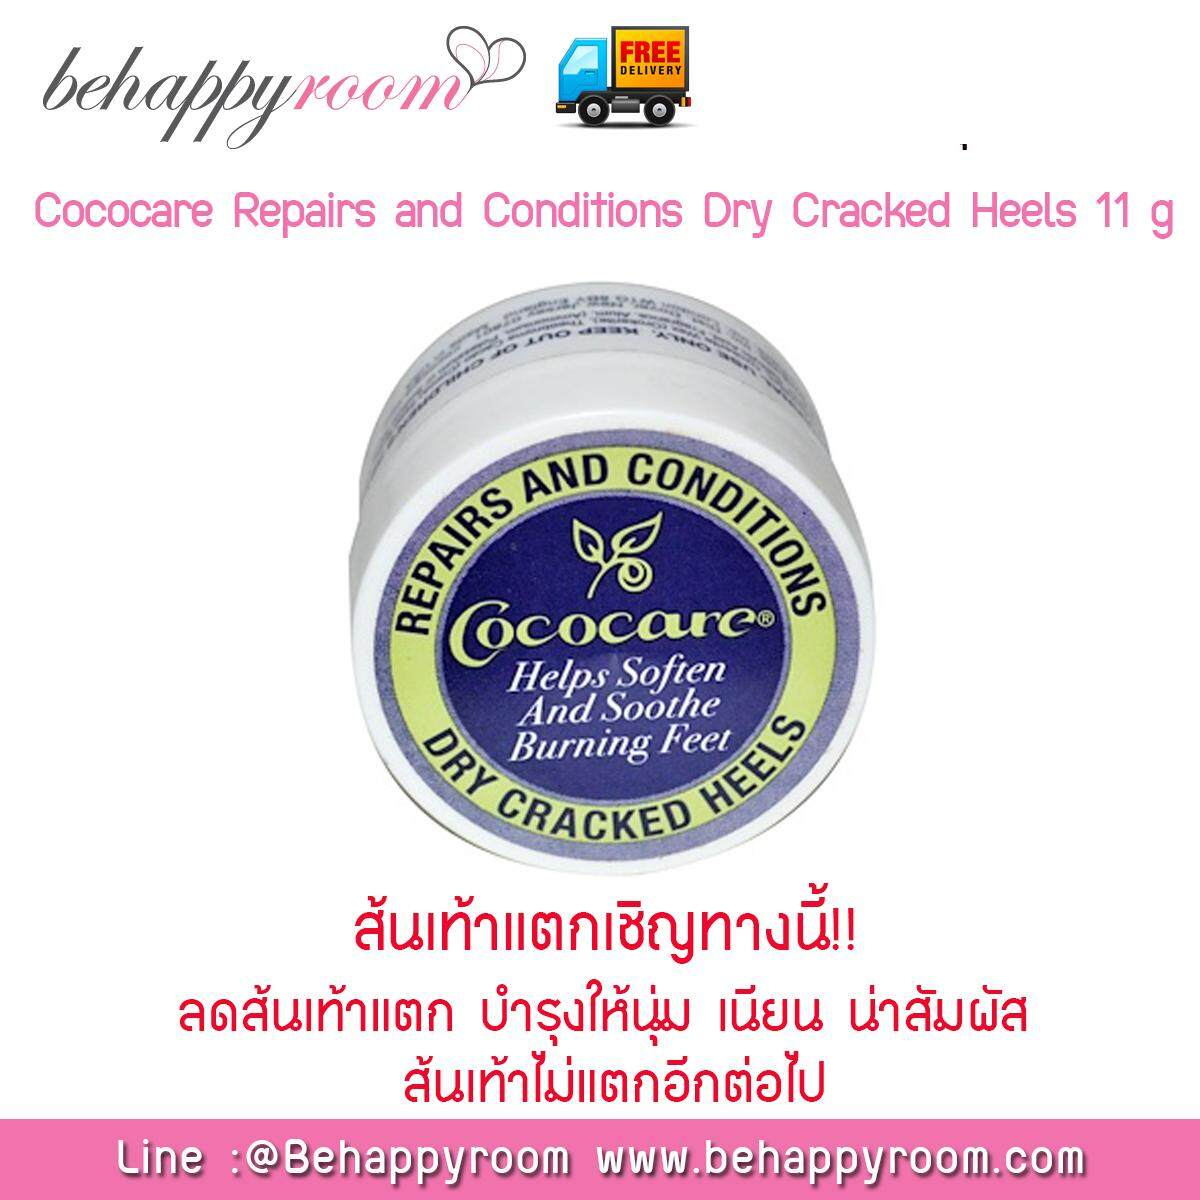 Cococare Repairs and Conditions Dry Cracked Heels รักษาส้นเท้าแตกสวยเรียบเนียน